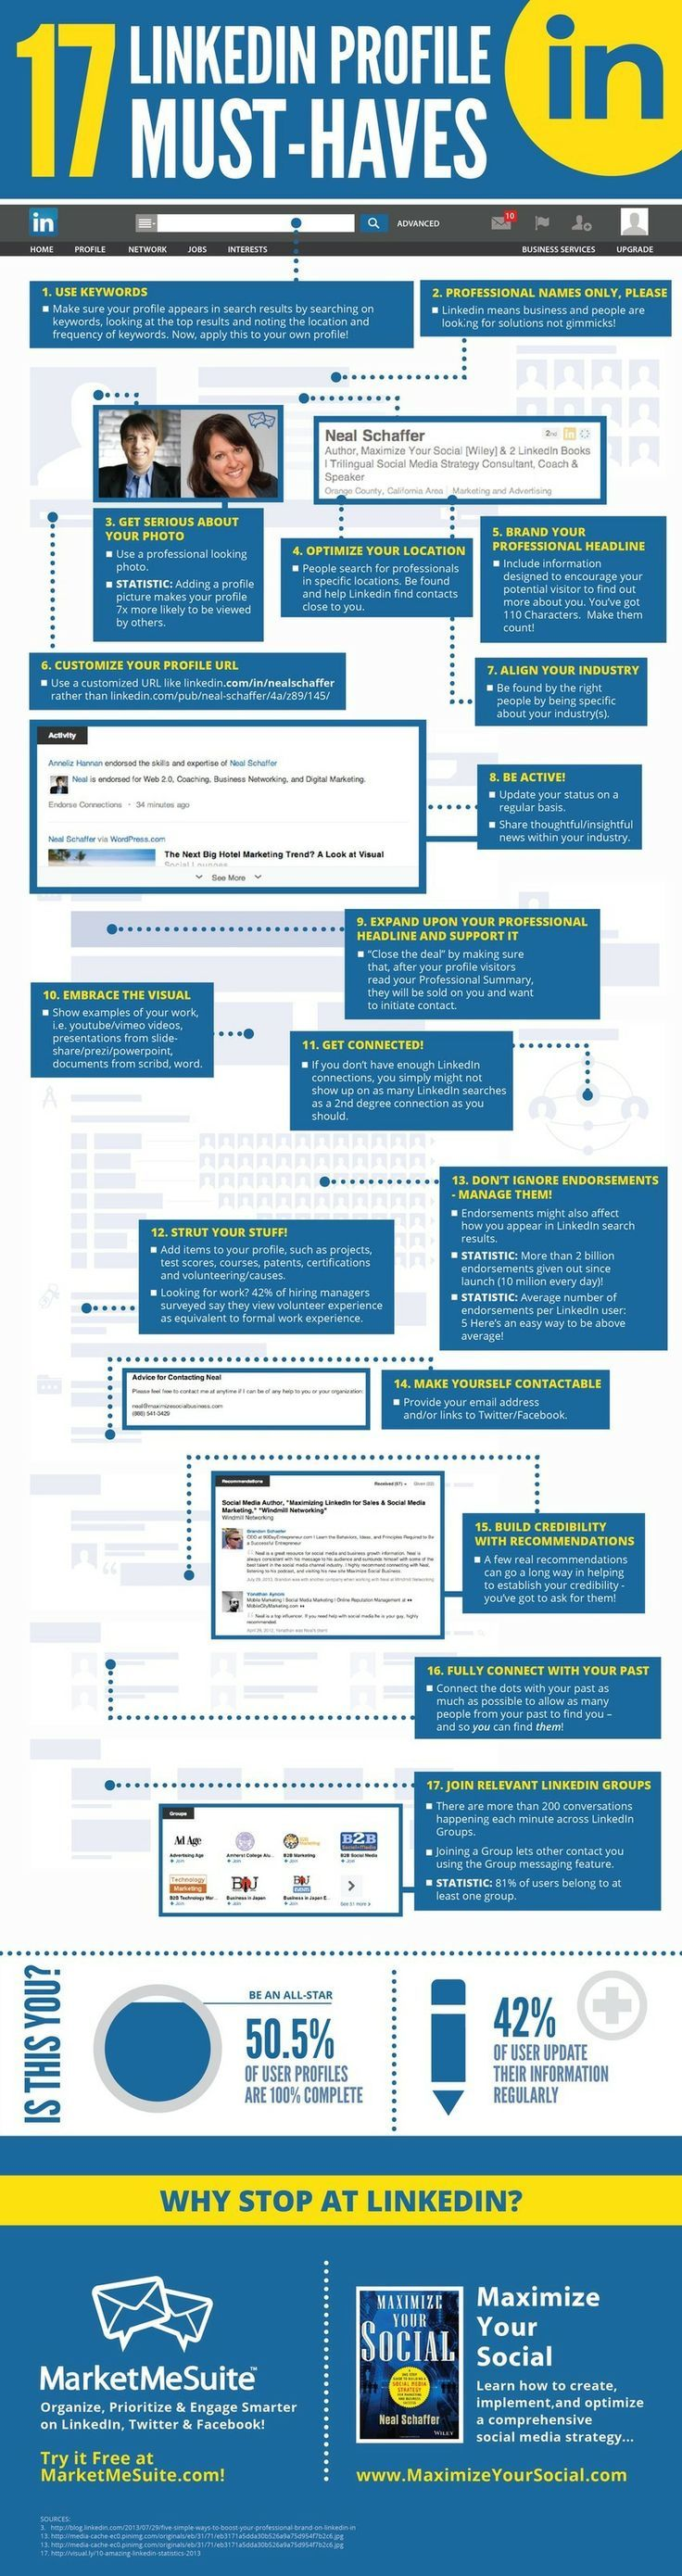 Great LinkedIn profile examples and tips. A good LinkedIn profile Increases Visibility In LinkedIn & Google Search. Get Your Skills And Personal Brand Noticed.